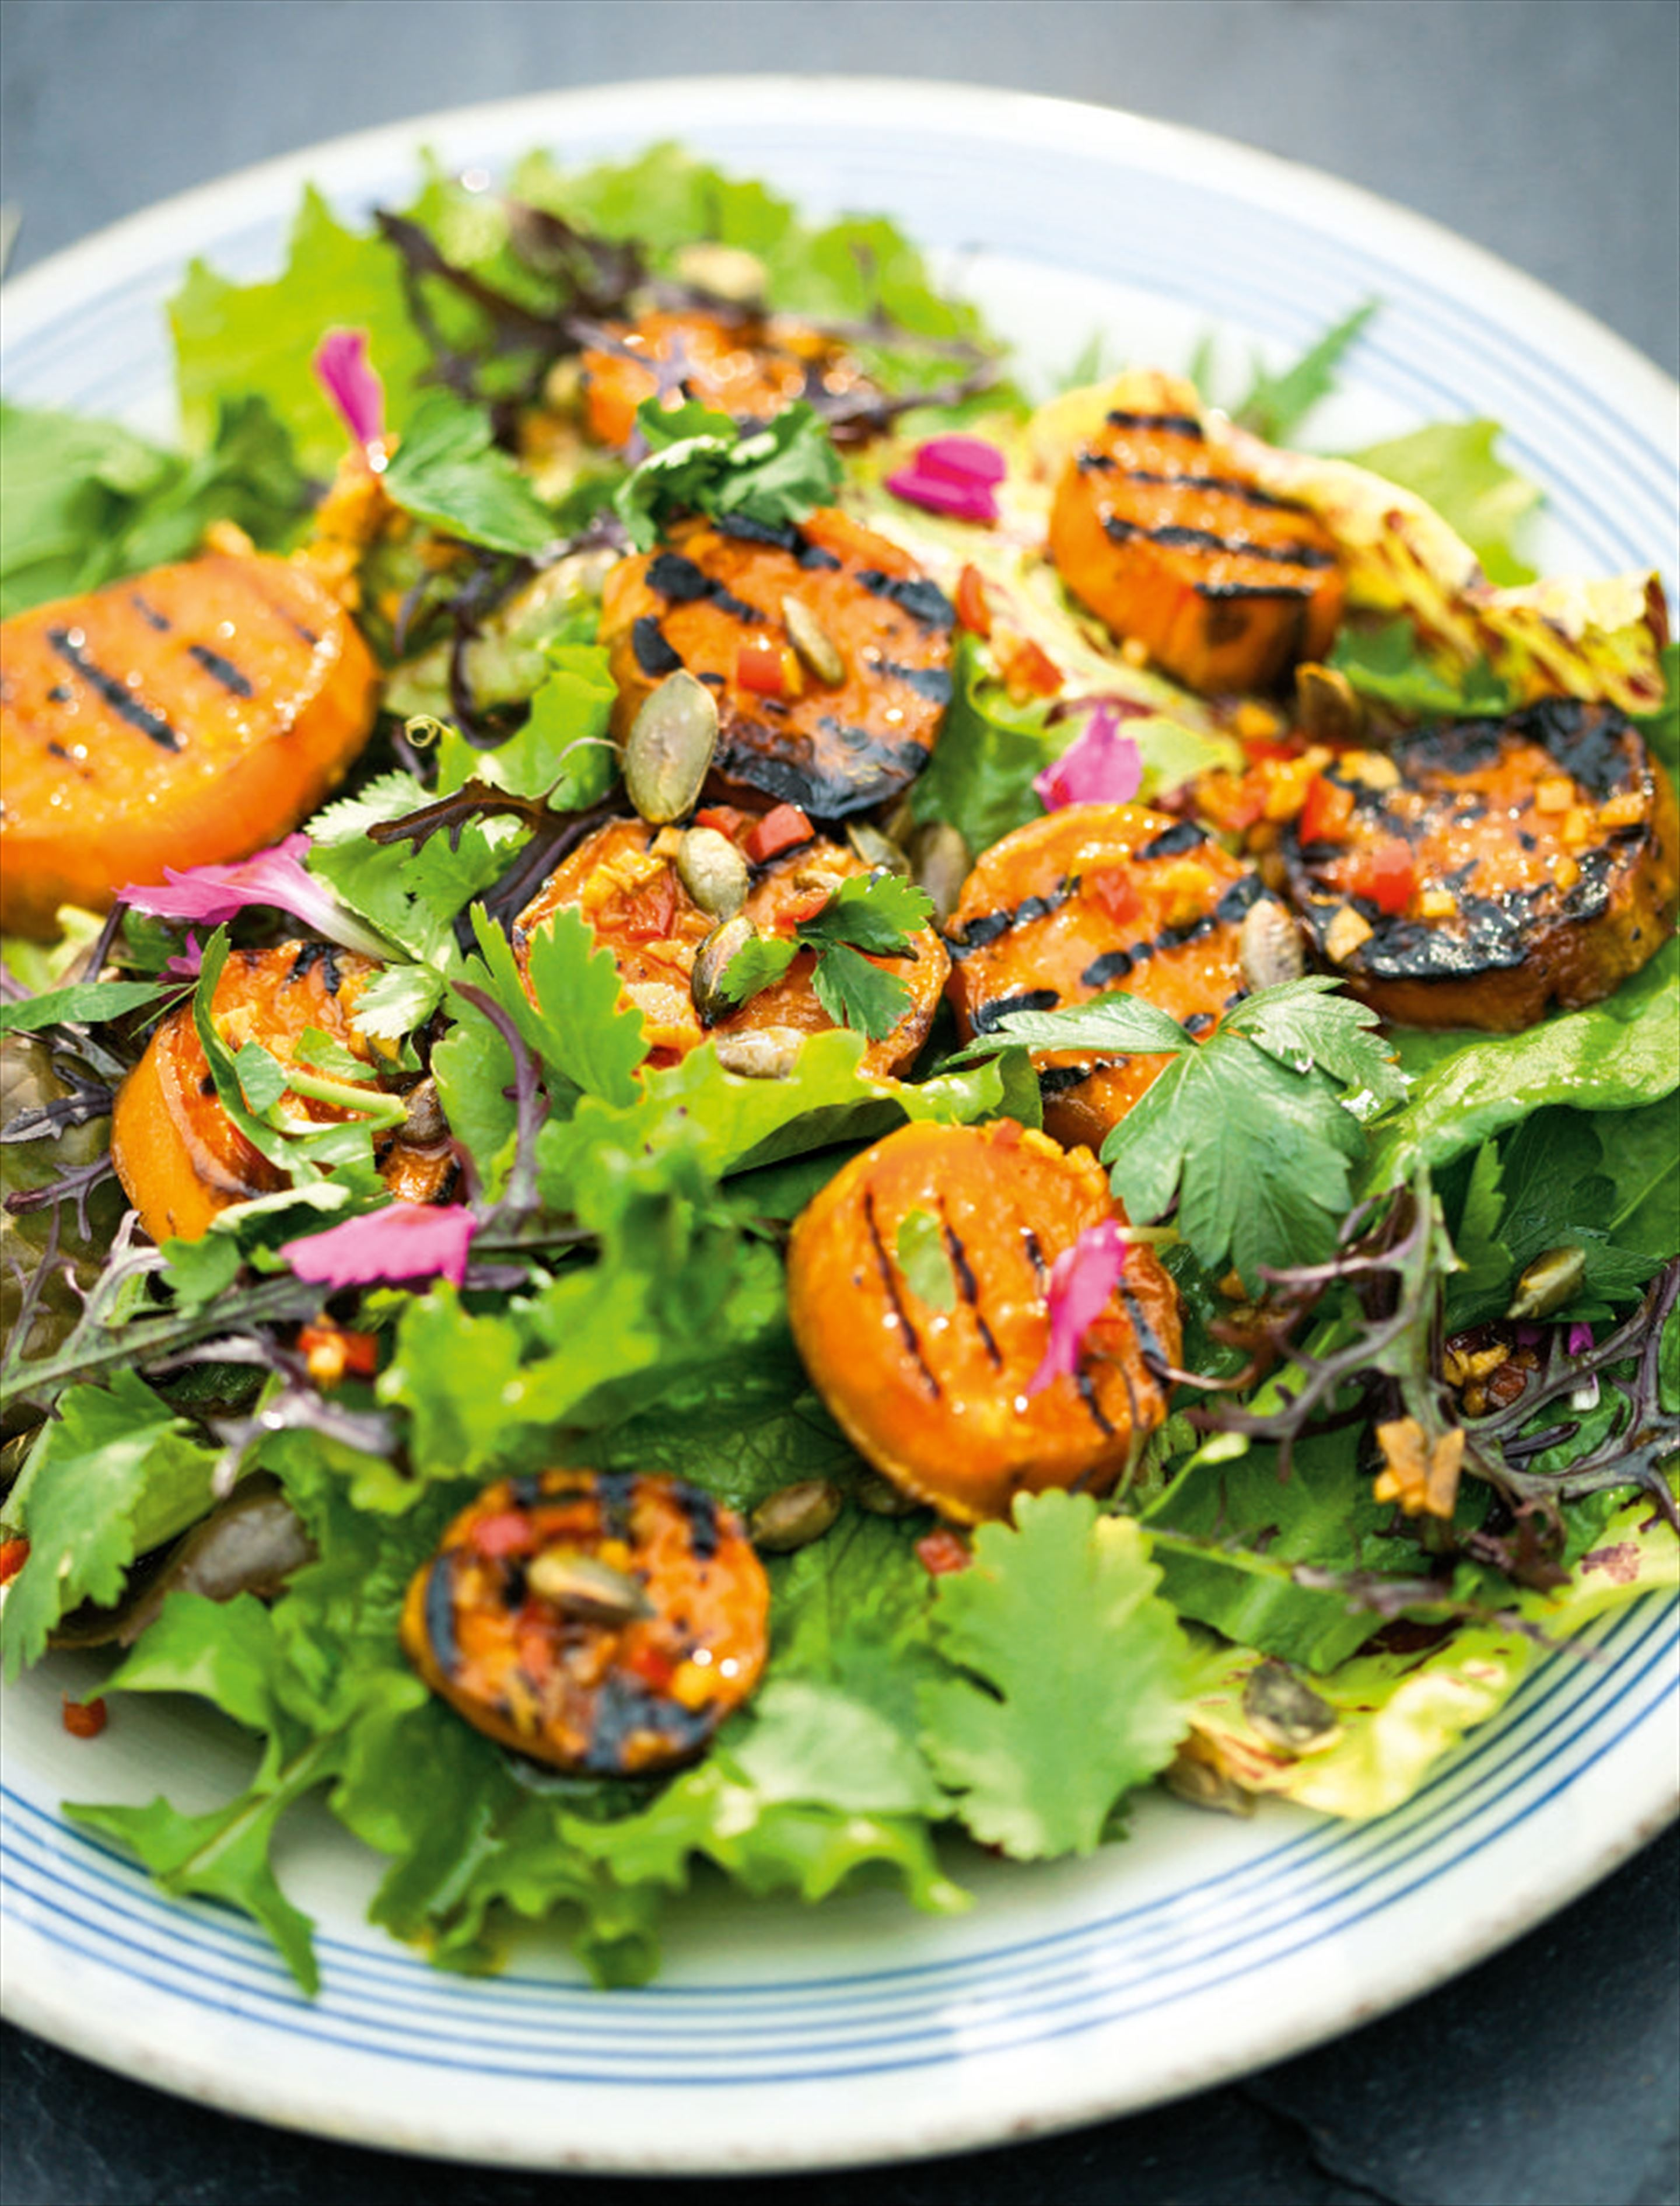 Sweet potato salad with watercress, ginger and soy